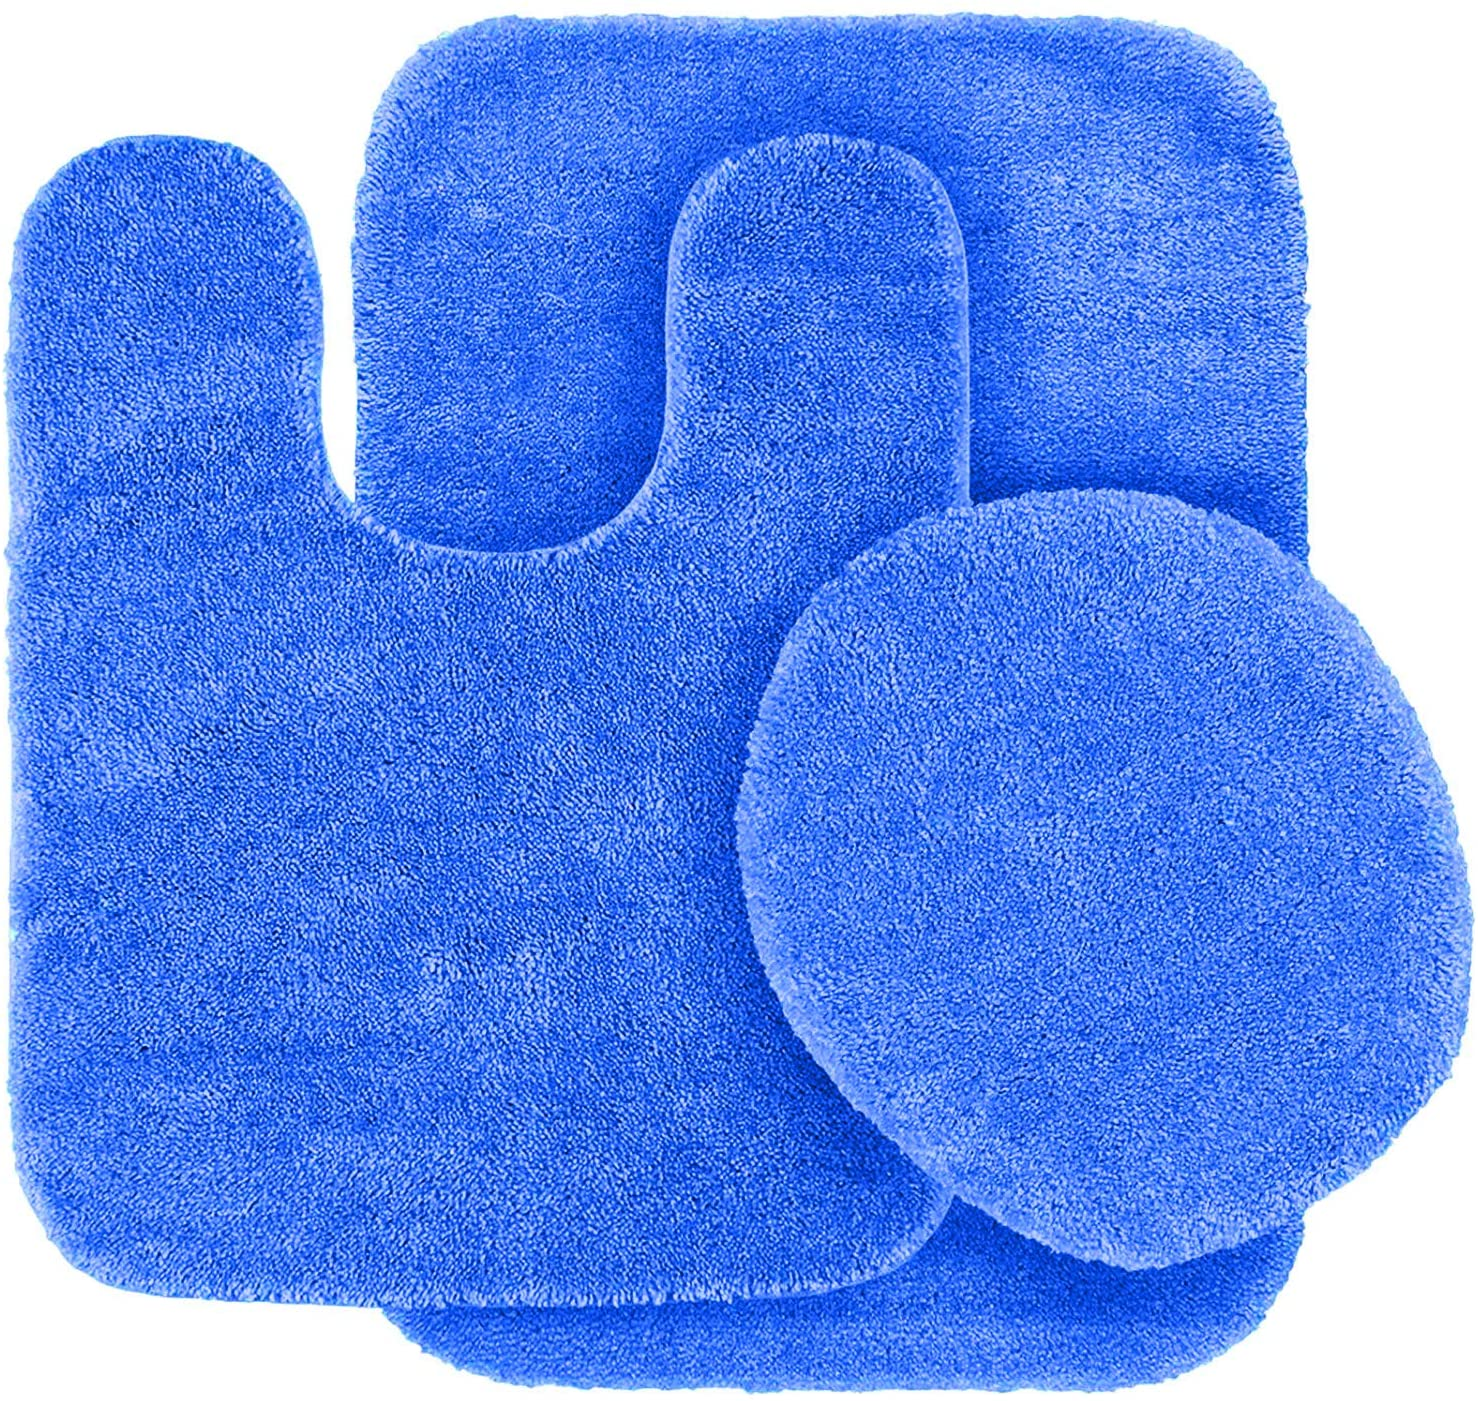 3pc Solid Non Slip Soft Bath Rug Set for Bathroom U-Shaped Contour Rug, Mat and Toilet Lid Cover New Angela (Royal Blue)